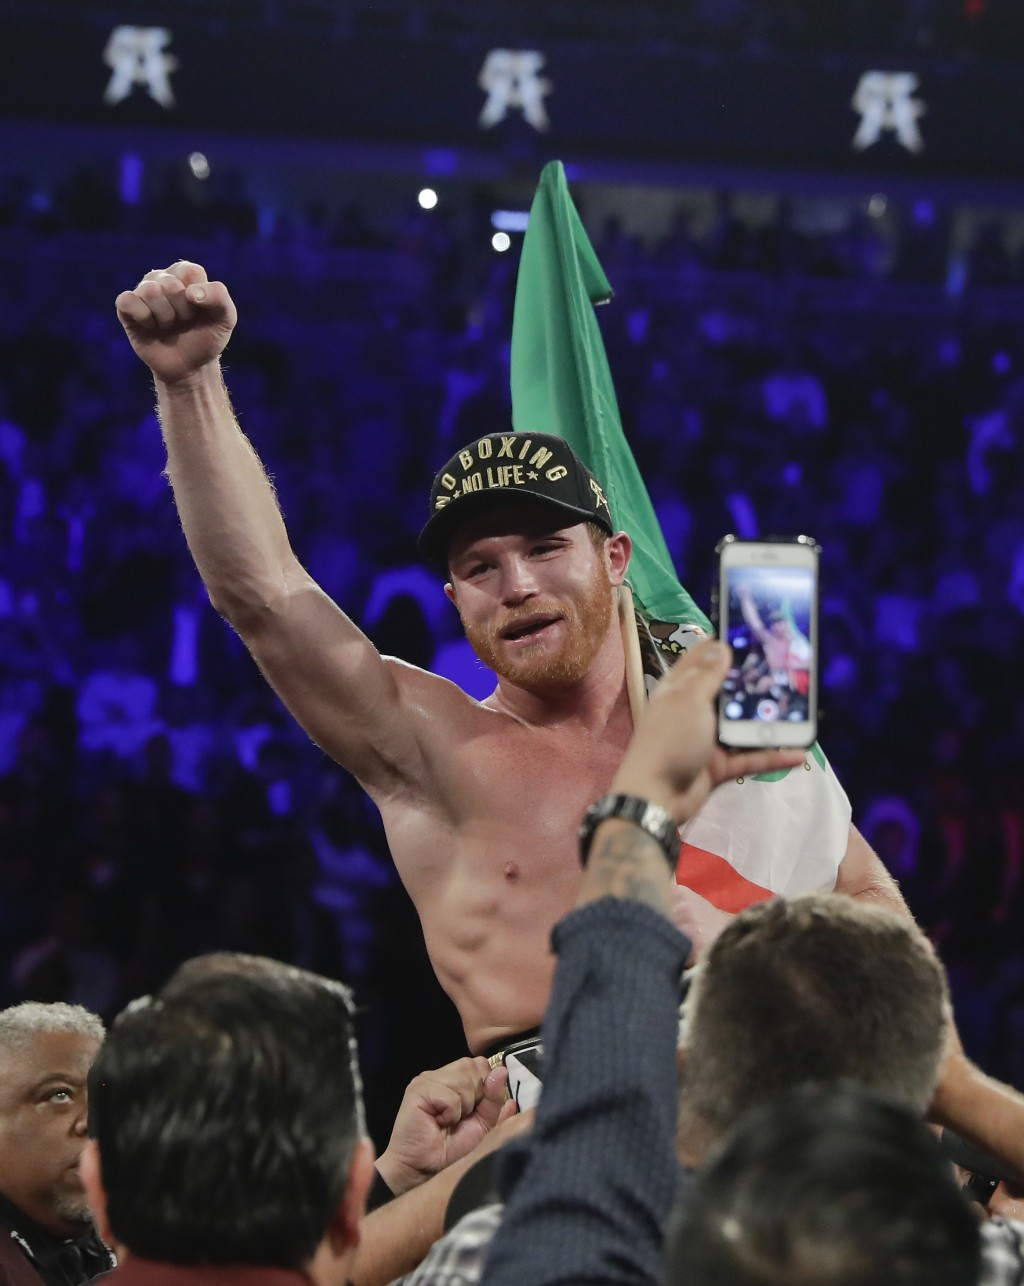 Canelo Alvarez celebrates after defeating Gennady Golovkin by majority decision in a middleweight title boxing match, Saturday, Sept. 15, 2018, in Las